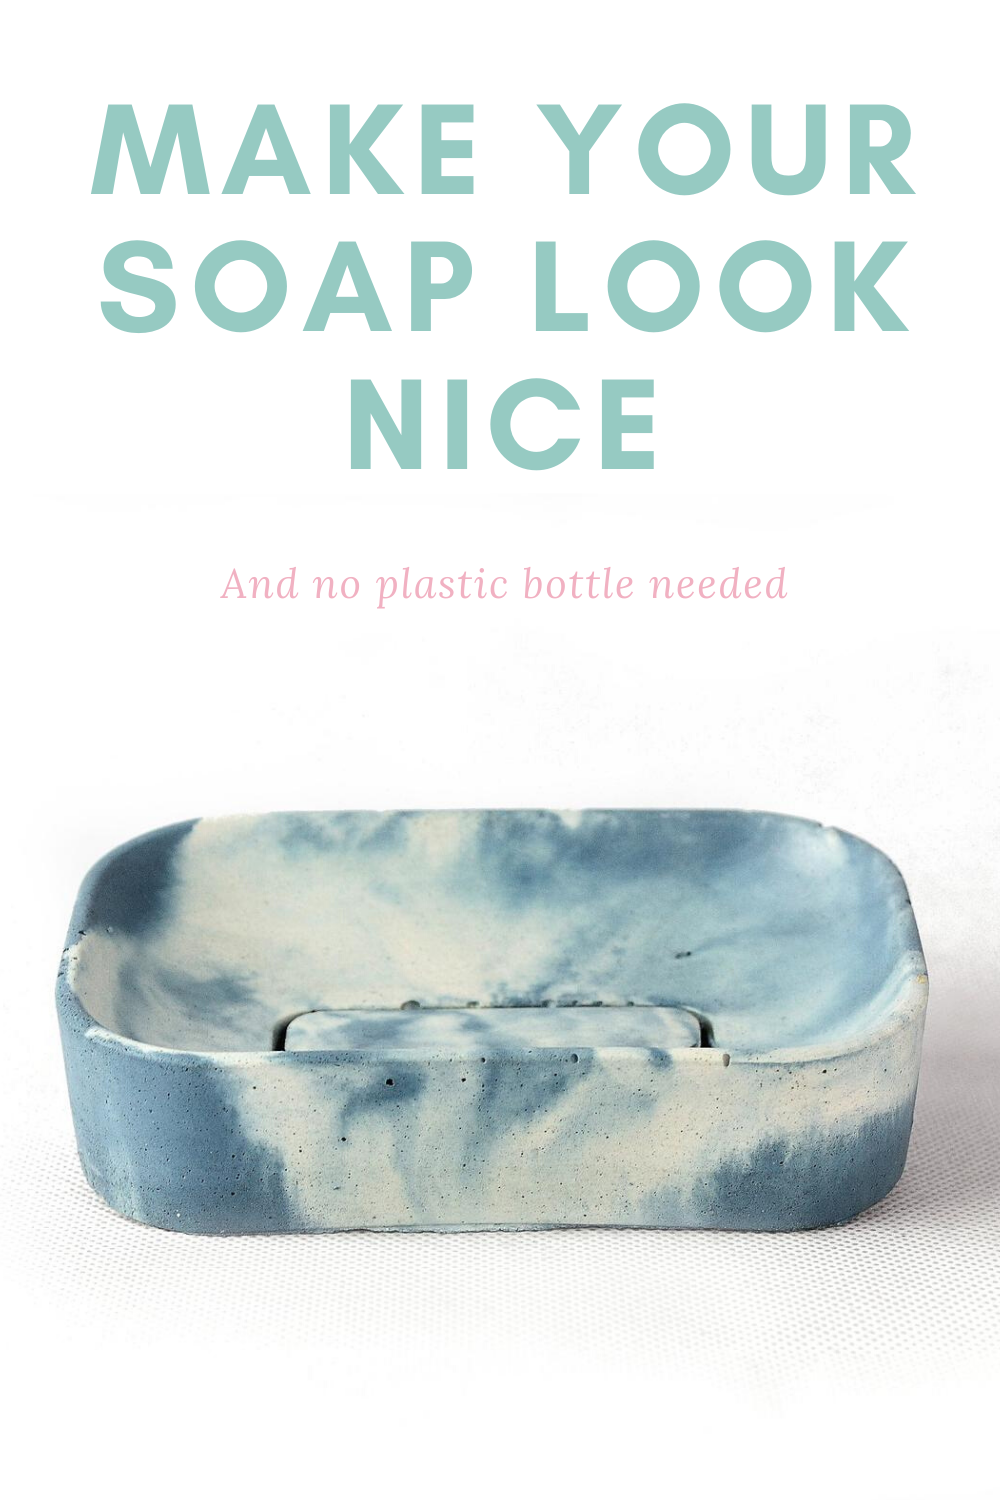 I stopped using soap bottles because i do not want more plastic in my trash. Look at this lovely one! They come in different colours.   #soapbar #soapdish#plasticfree#zeepschaaltje